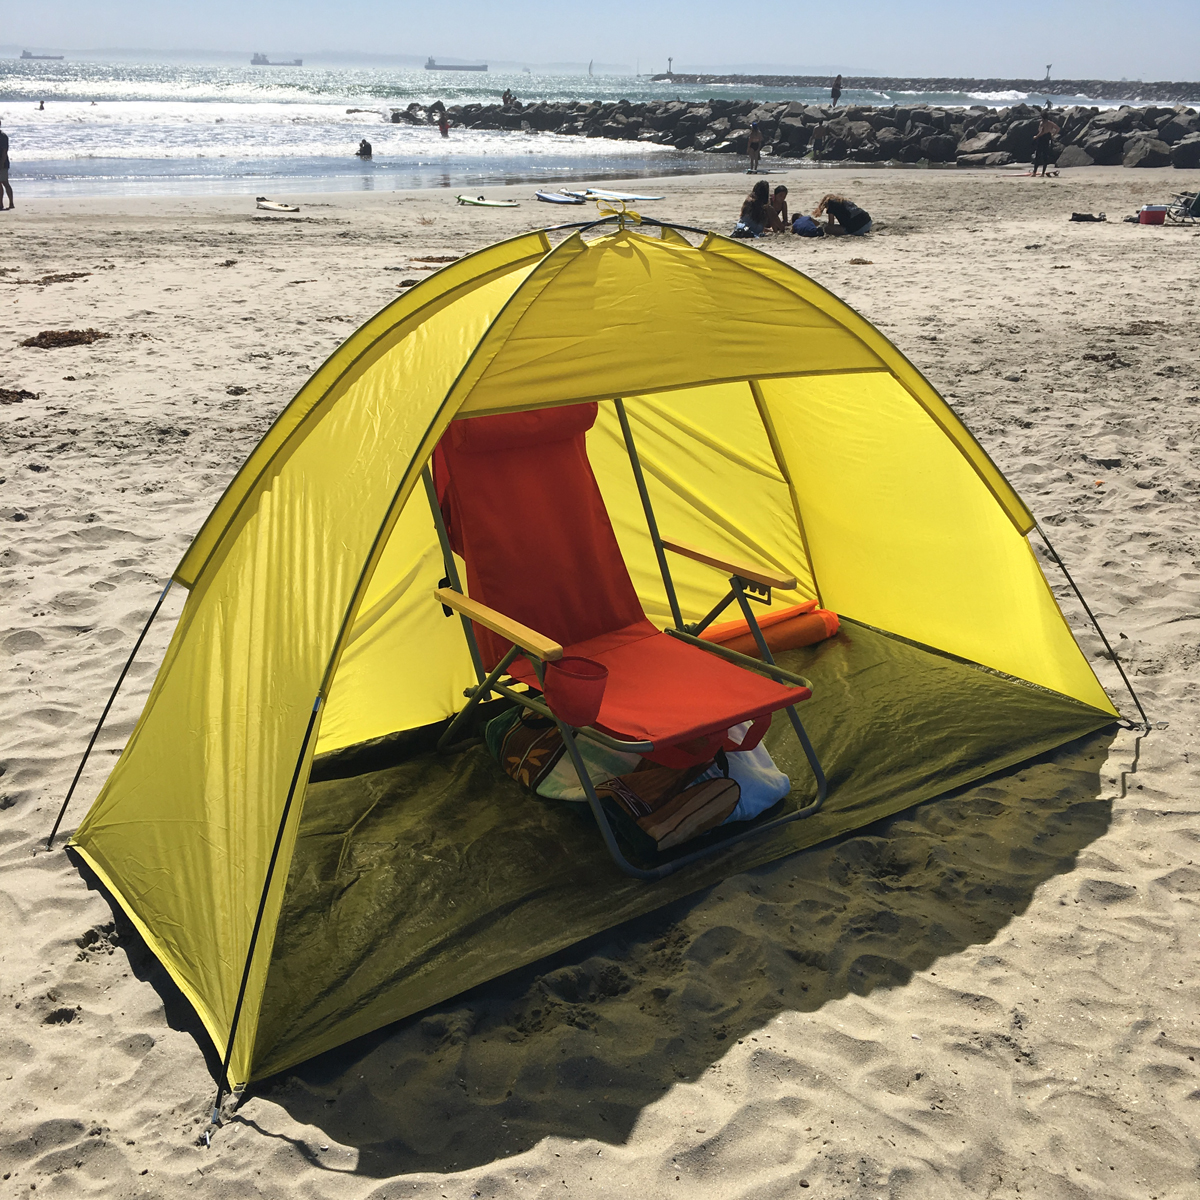 Pop Up Beach Shelters : Yellow person pop up cabana beach shelter baby tent sun